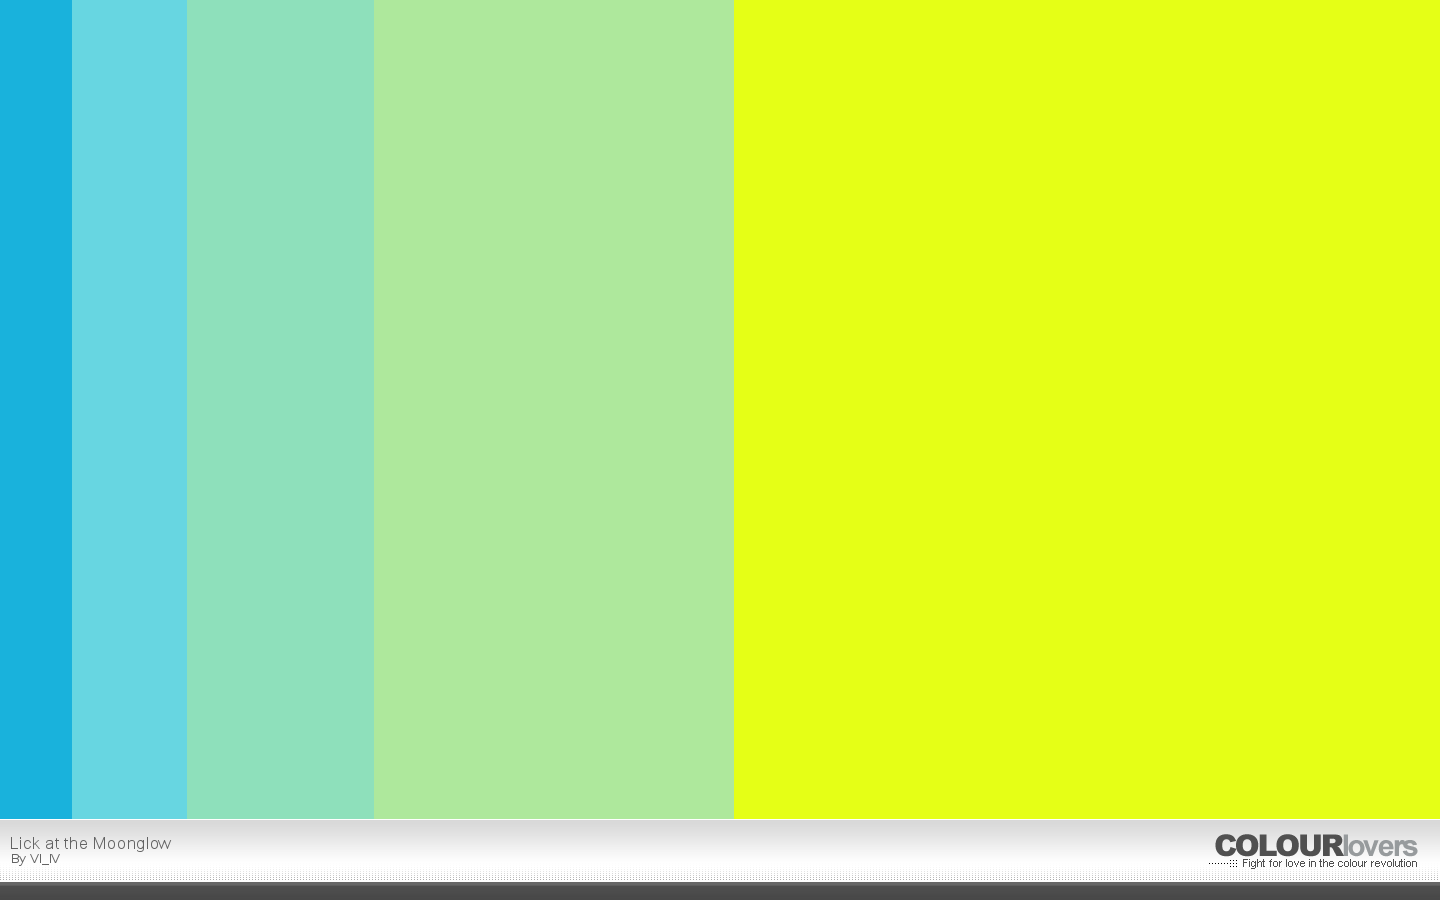 COLOURlovers.com-Lick_at_the_Moonglow